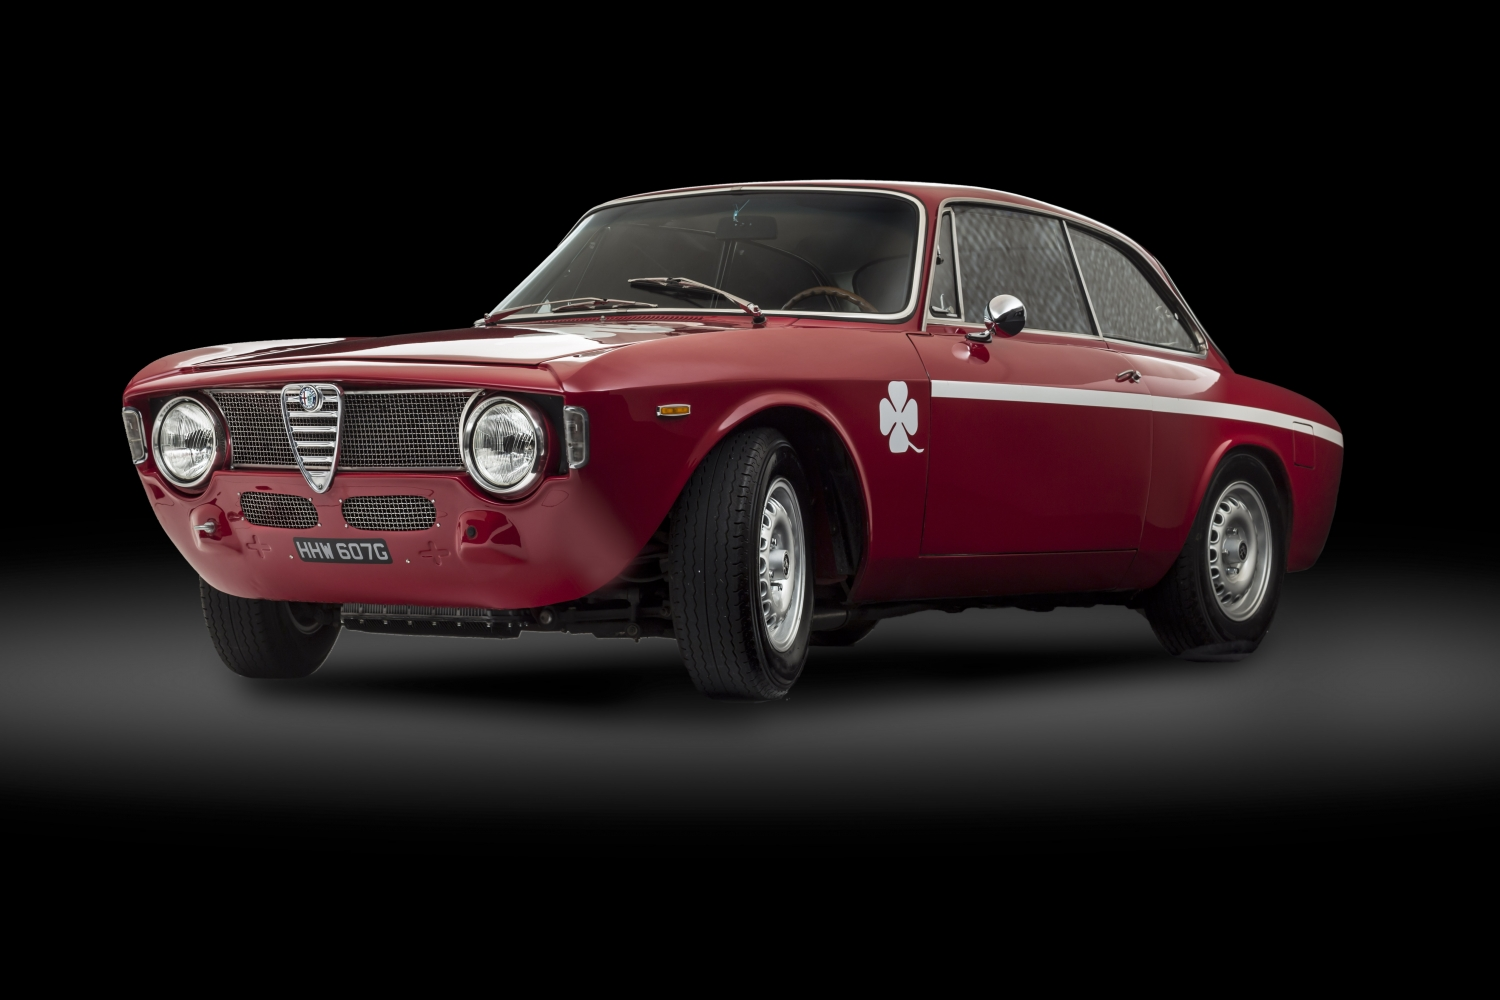 Alfa Romeo Magnesium Wheels Giulia Gta 1300 Junior Sold Southwood Car Company Main Photograph For